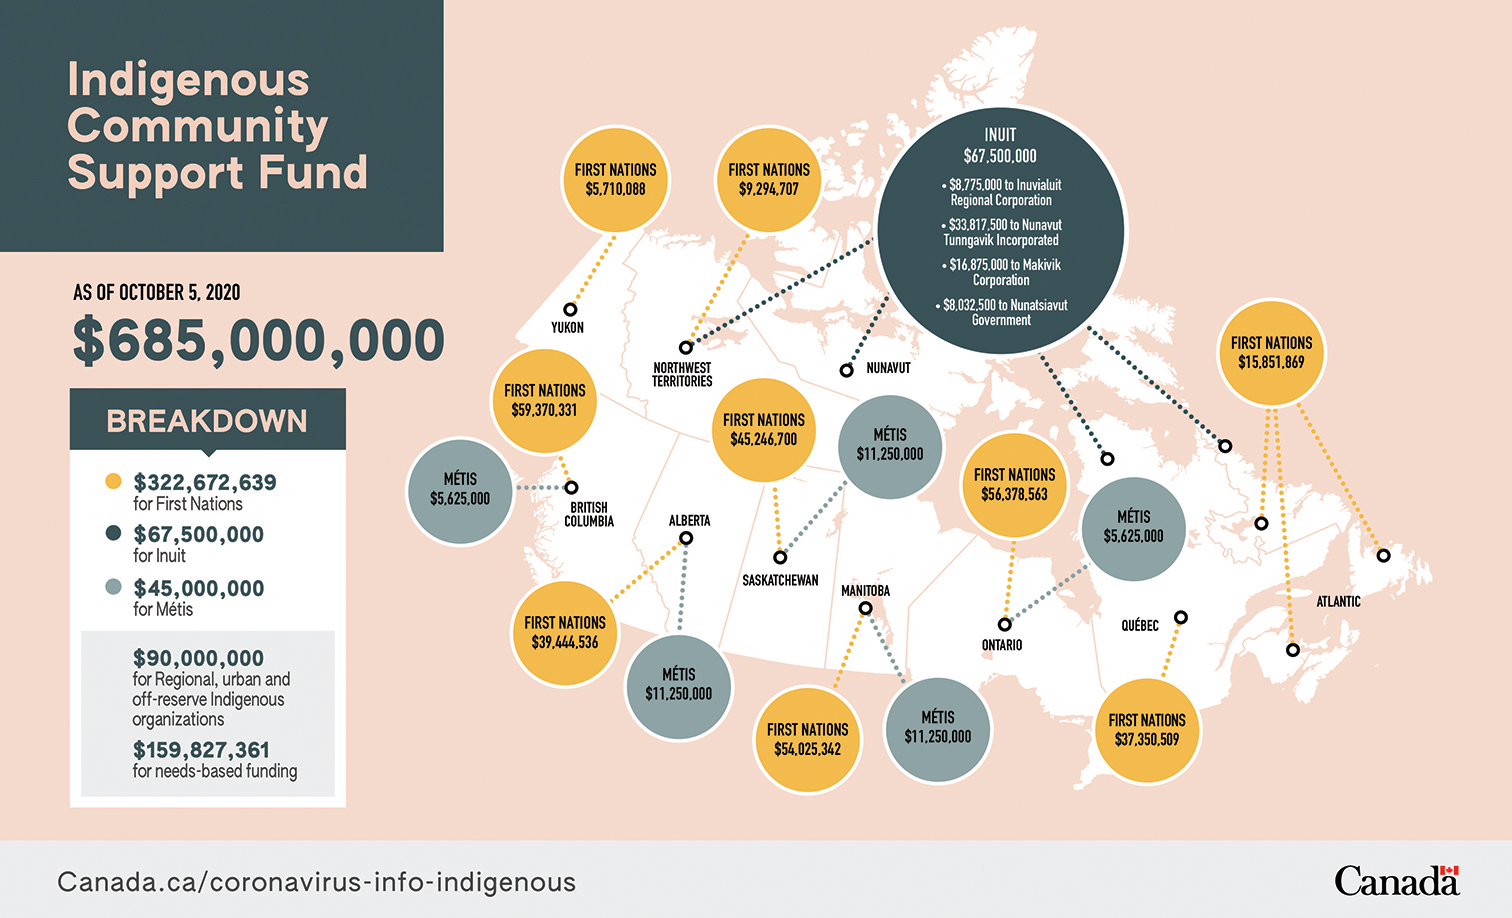 Indigenous Community Support Fund